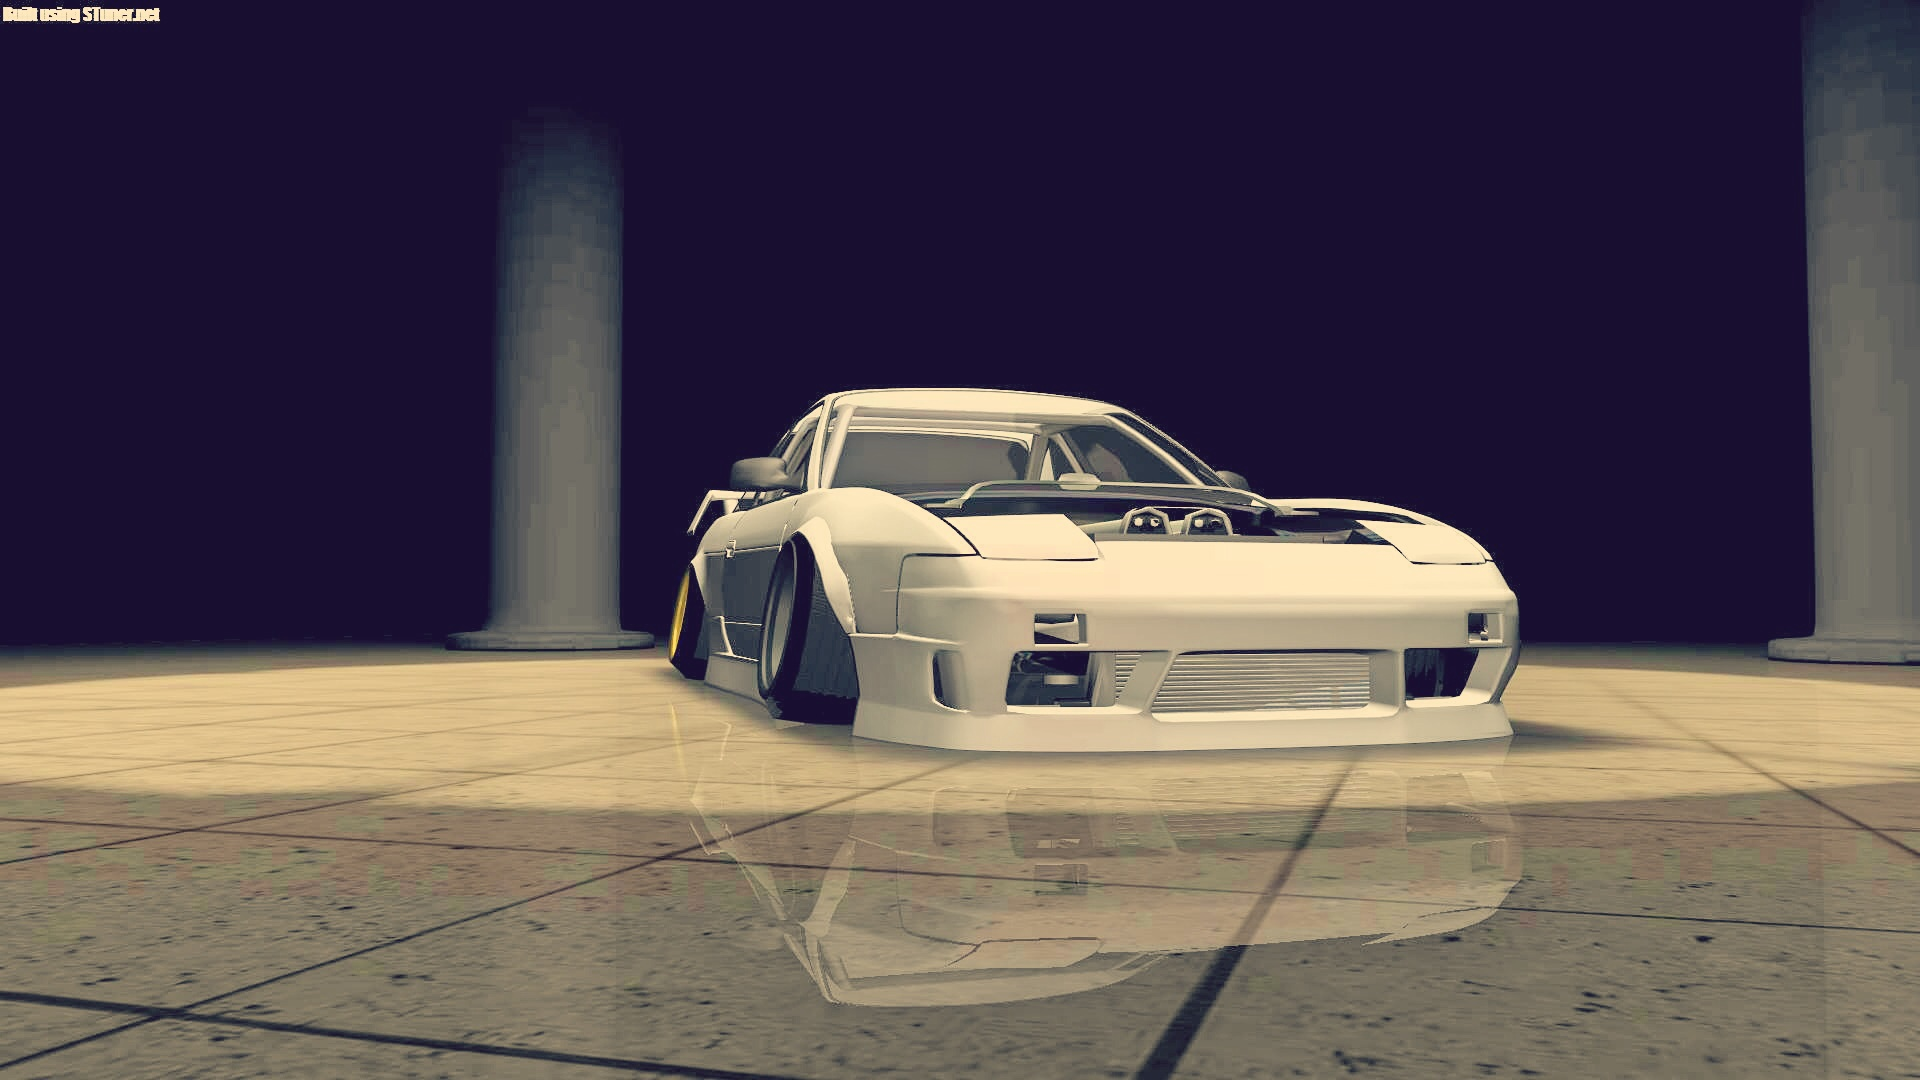 In my opinion CT should start doing 3D Models/ S-Tuner